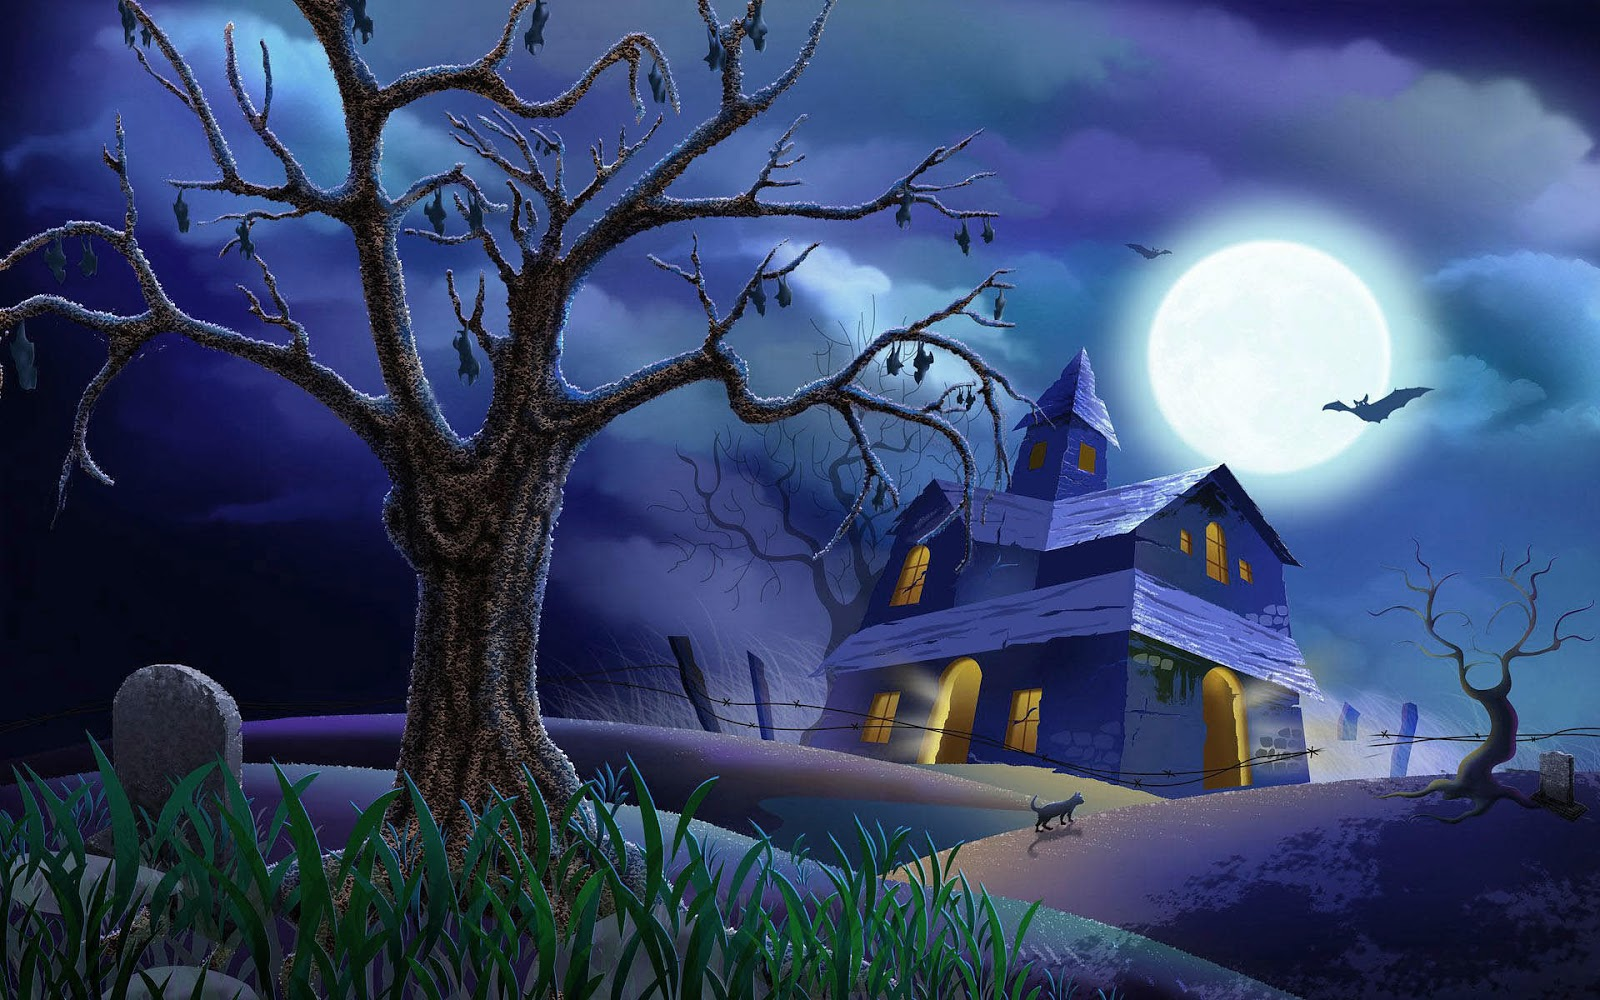 wallpaper: 3d Halloween Wallpaper For Mac